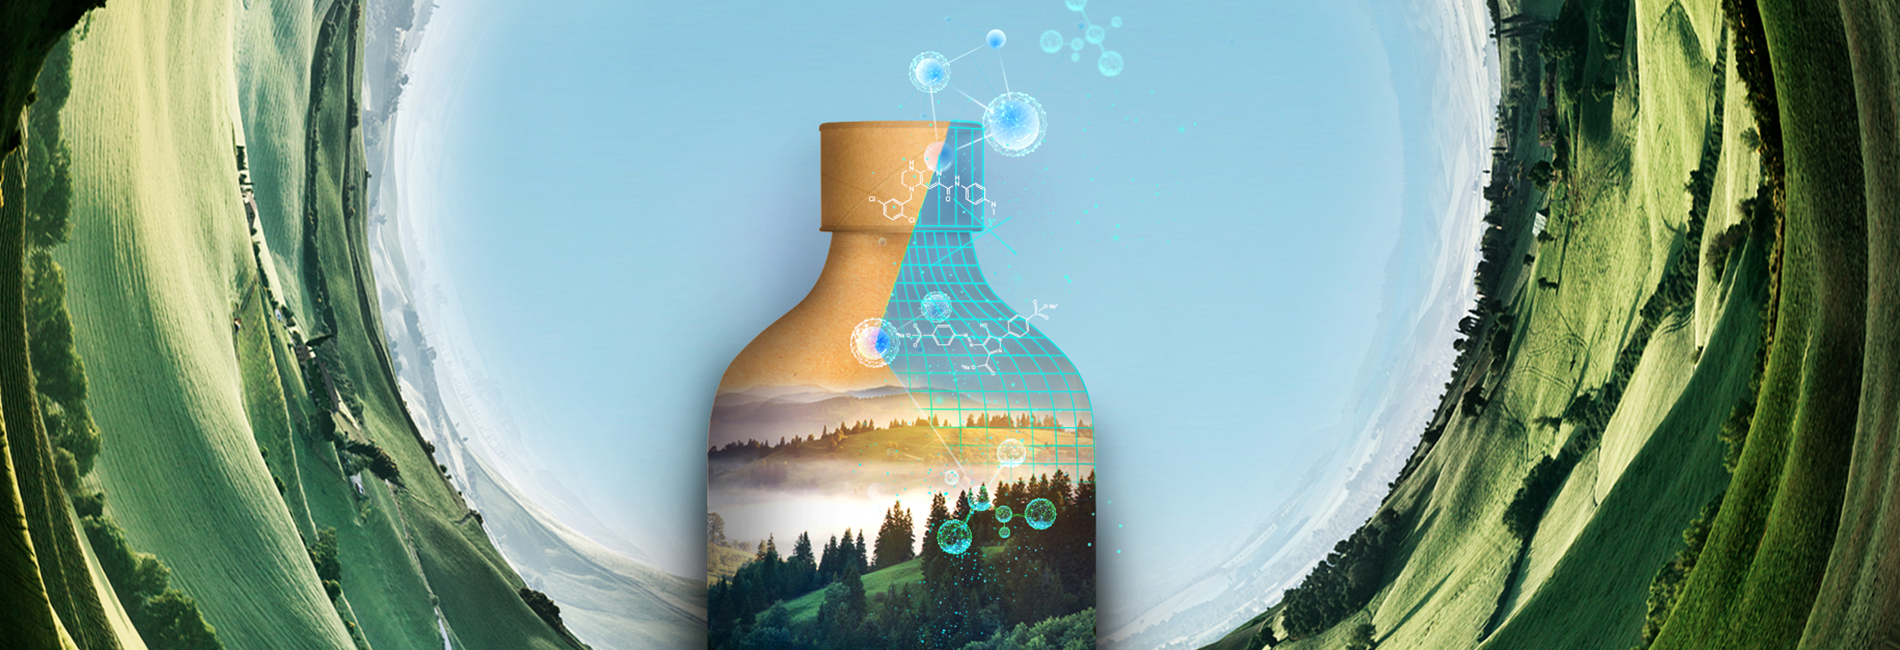 A New Vision Of Sustainable Packaging > Image > Dassault Systèmes®